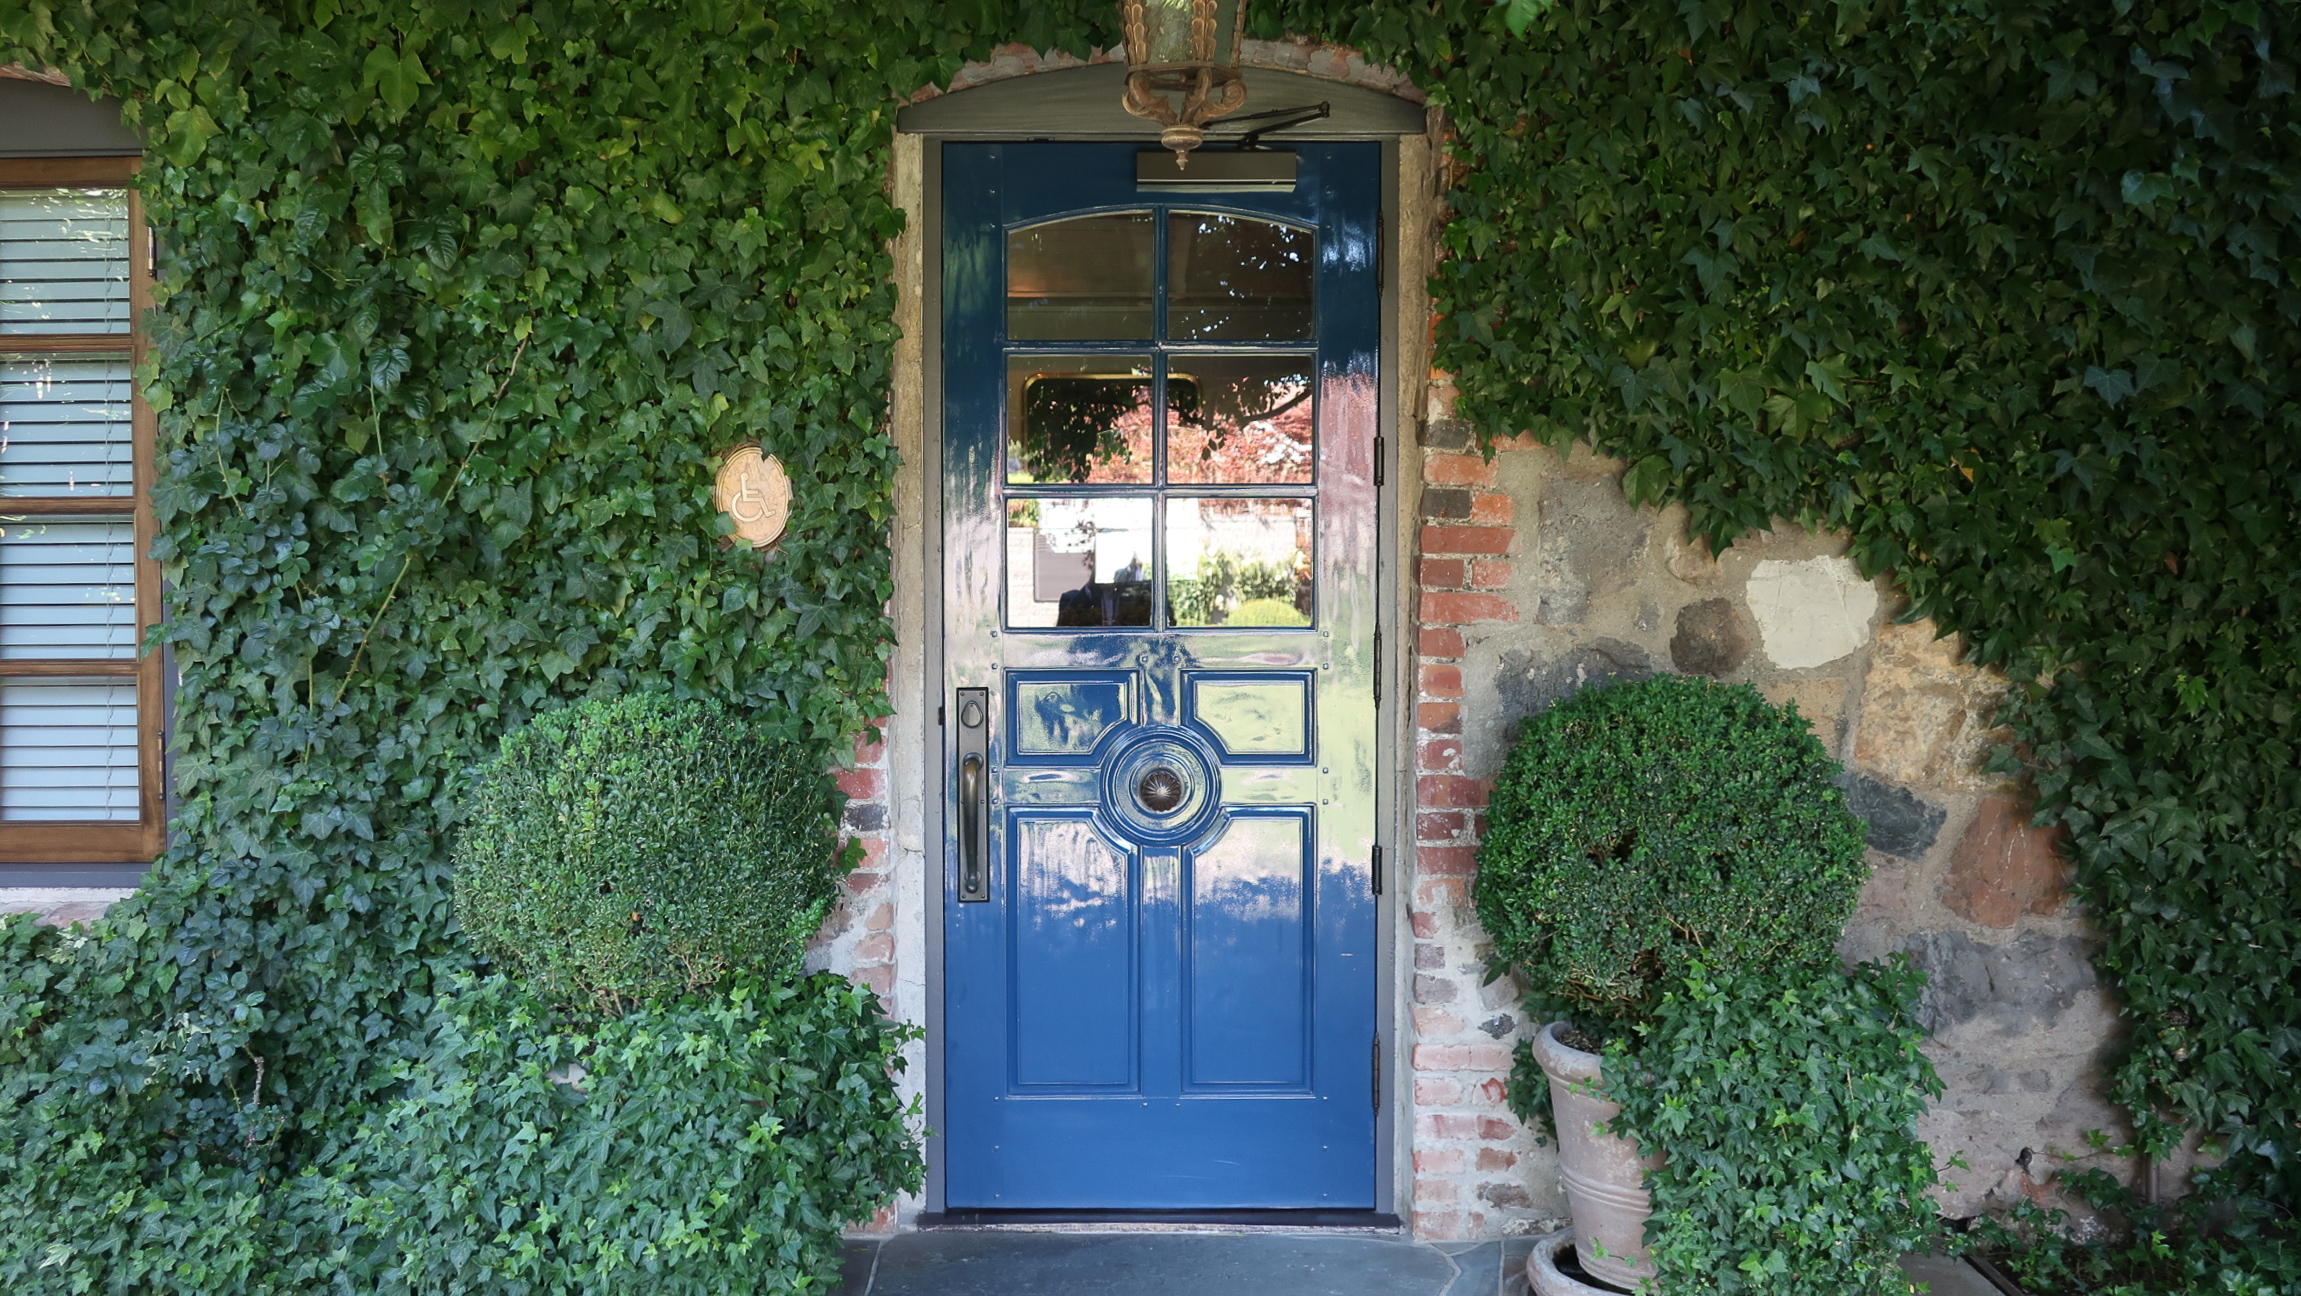 The famous Blue Door welcomes you to The French Laundry